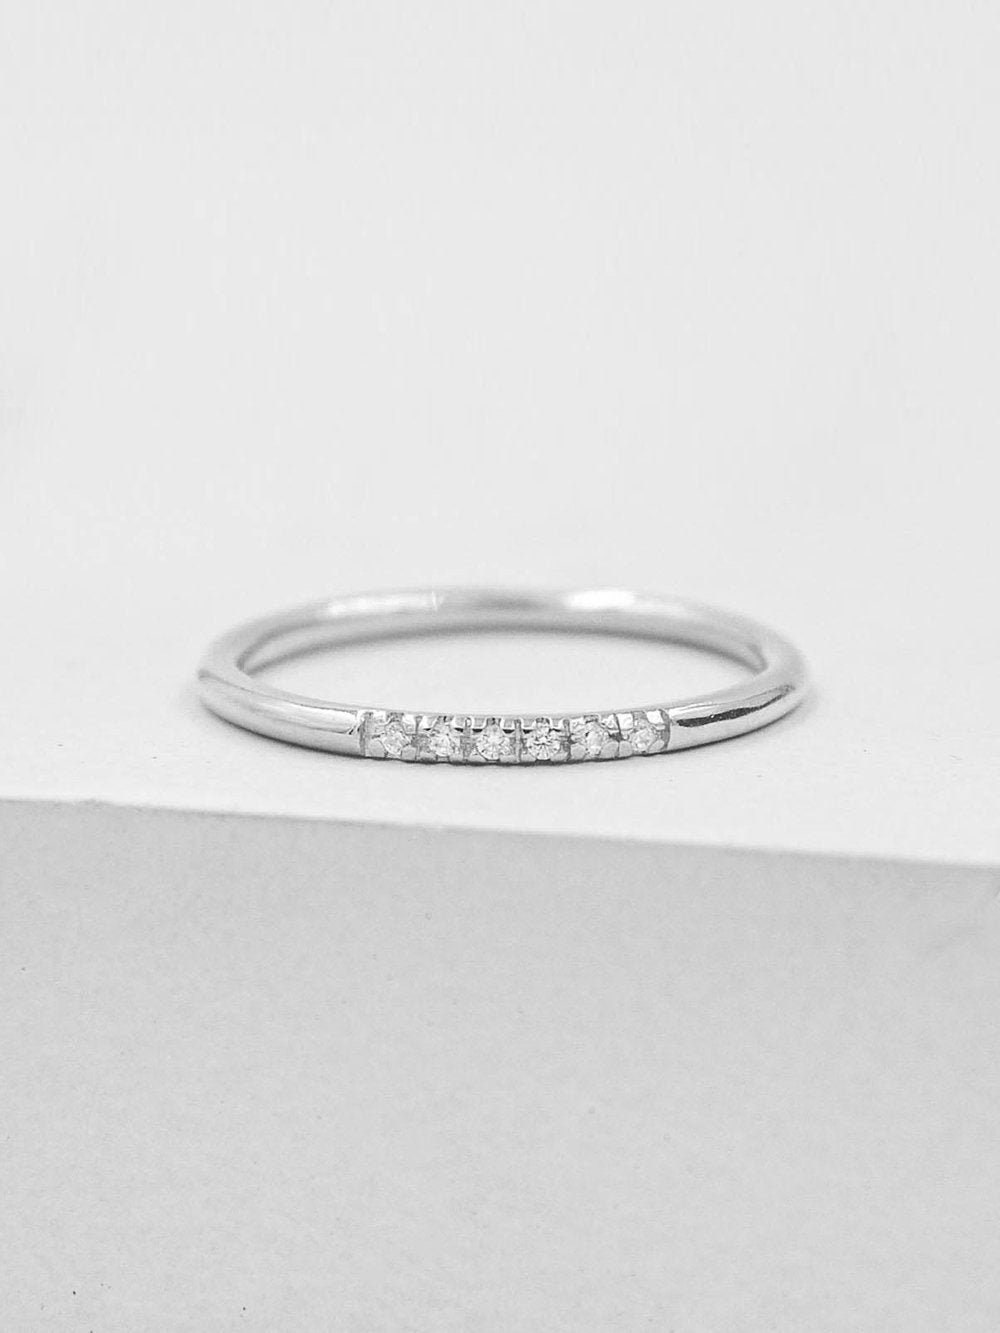 Thin Ring Mini Eternity Band Rose Gold Promise Ring Ring with 6 micropave CZ Stones Petite Stacking Ring Dainty Ring